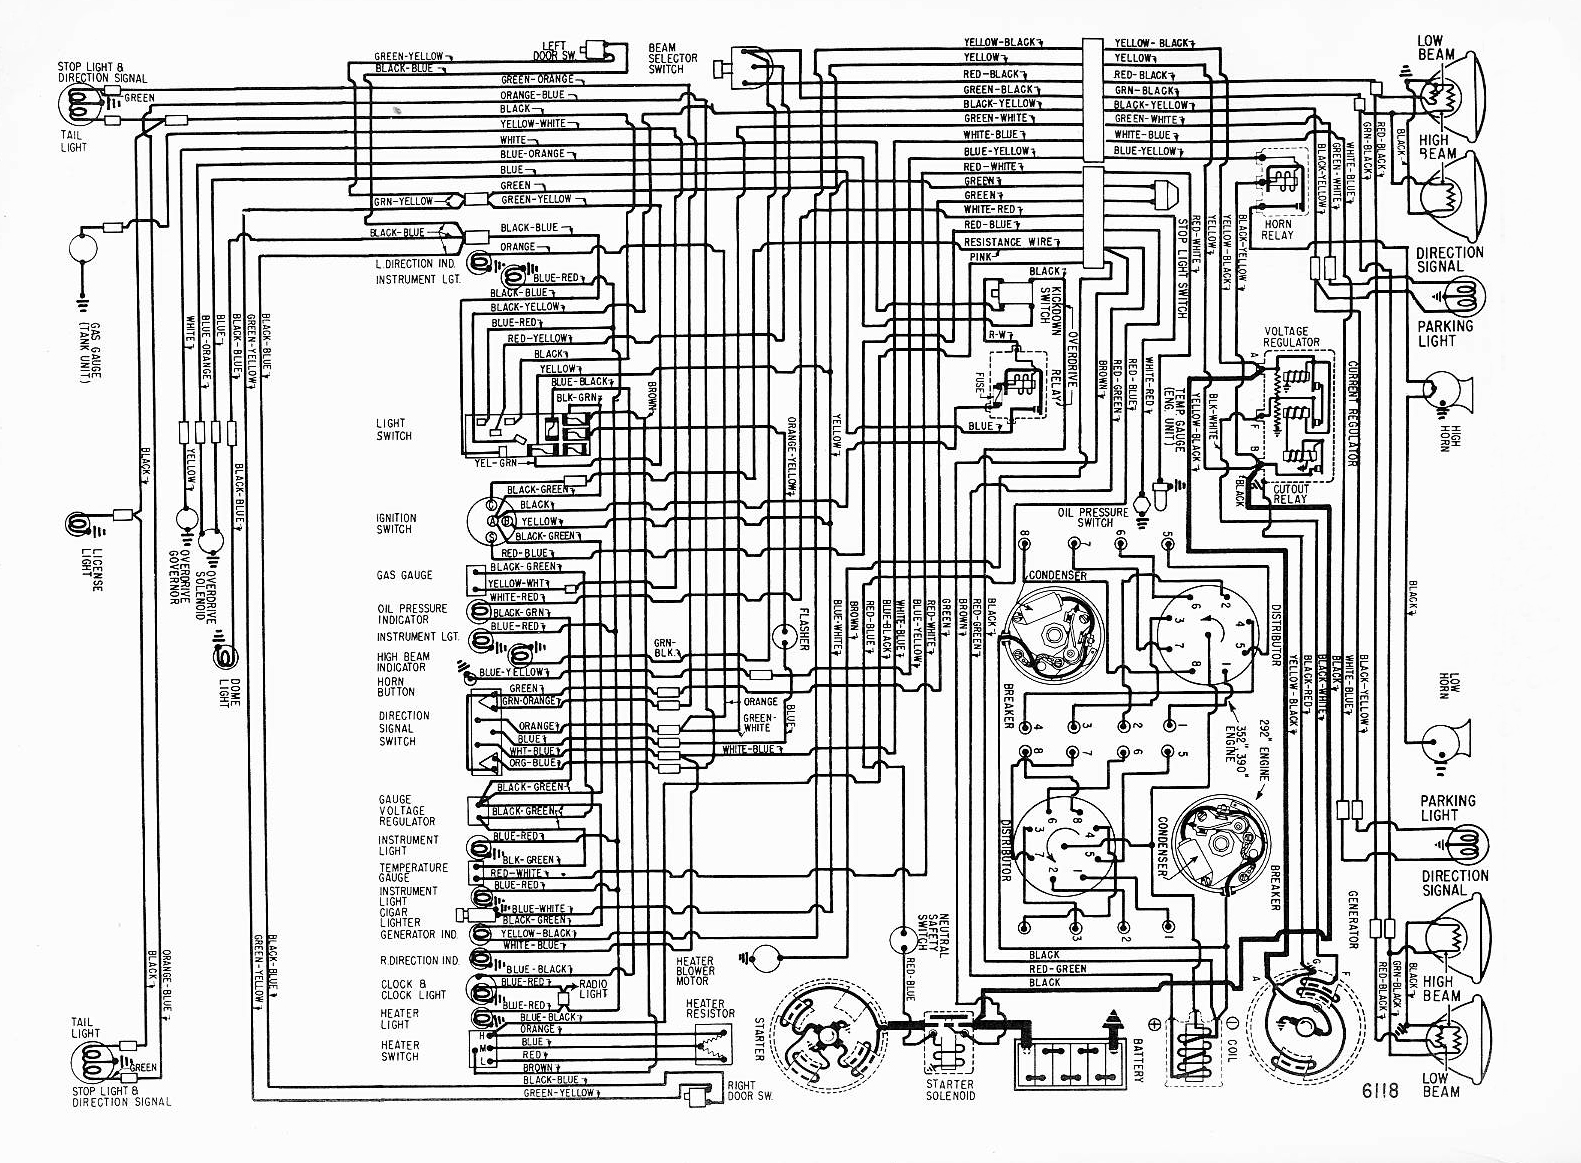 490221 1980 corvette wiring diagram 77 corvette wiring diagram \u2022 wiring 2000 C5 Corvette Wiring Diagram at gsmx.co